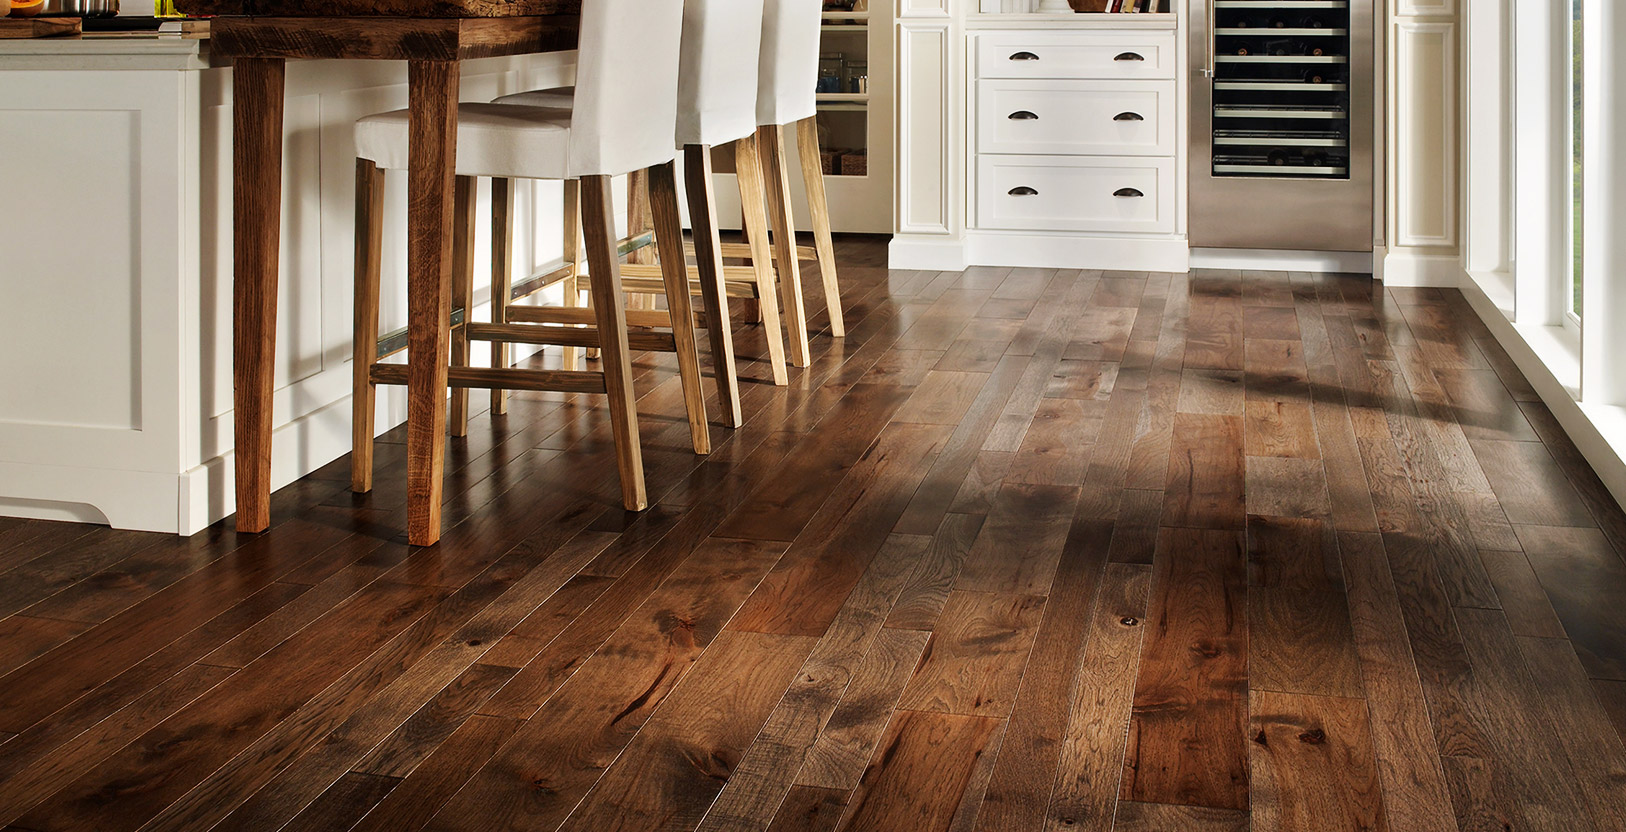 bamboo flooring photo source: homedit.com TRGICJT